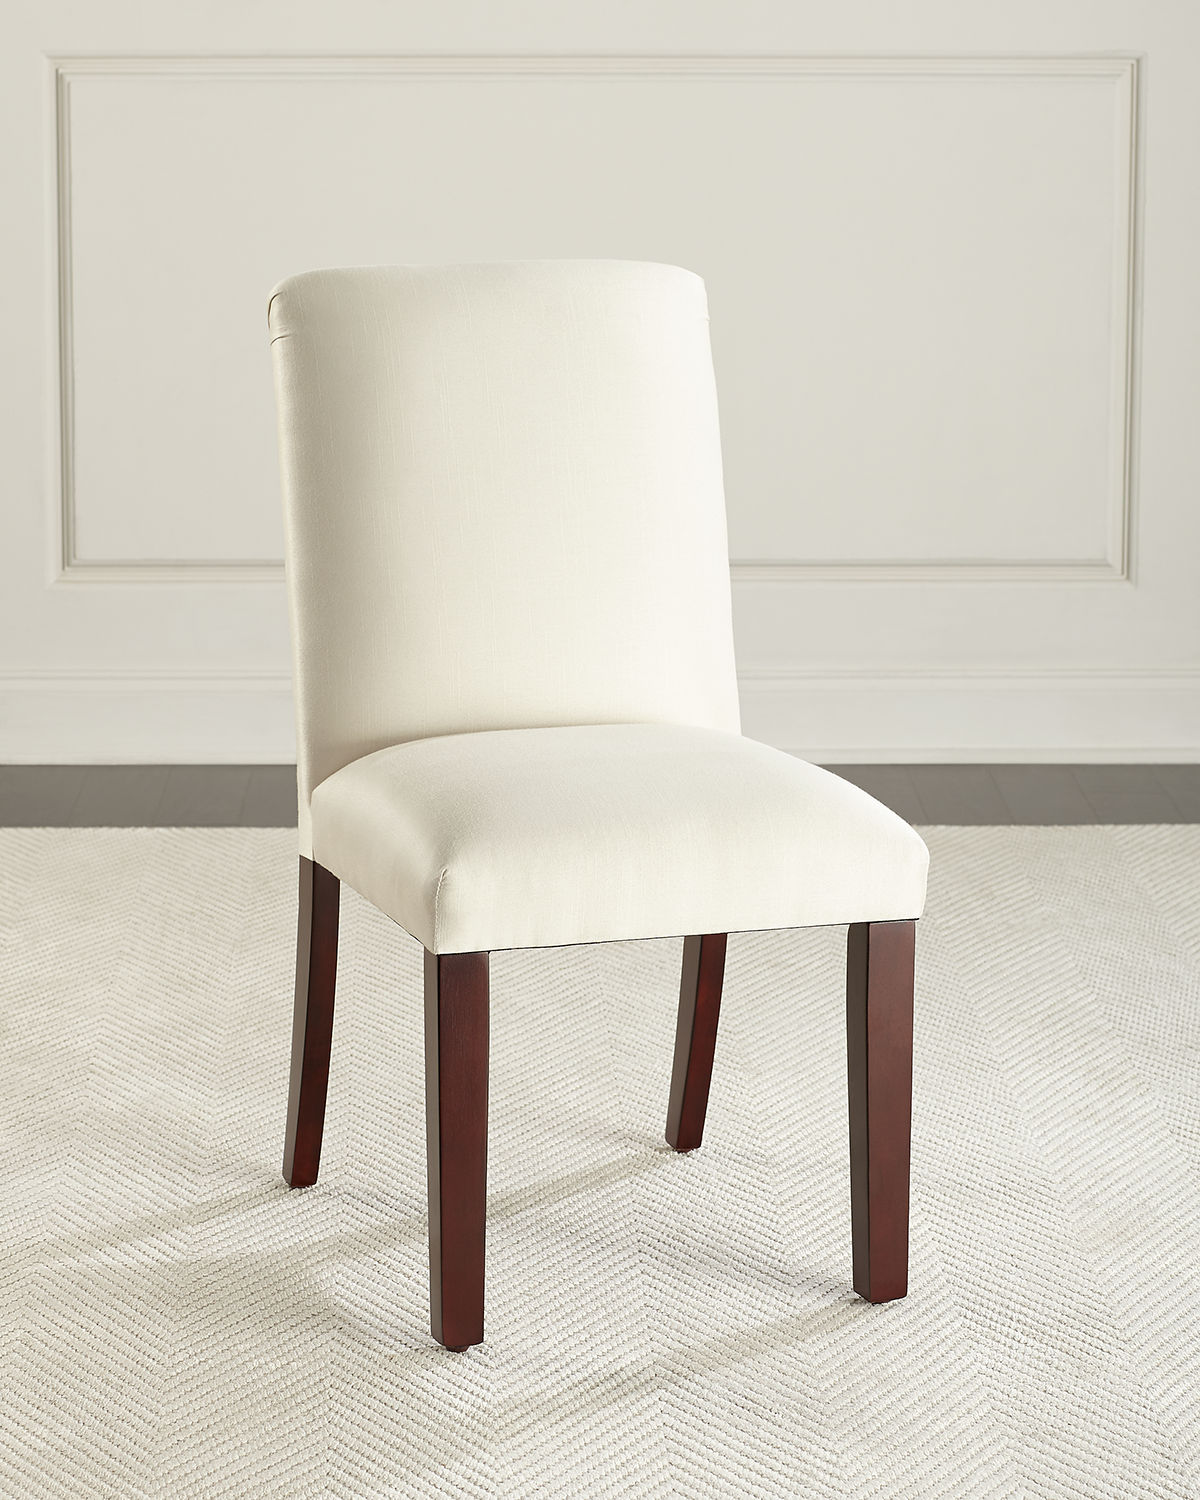 Alain diamond tufted dining chair